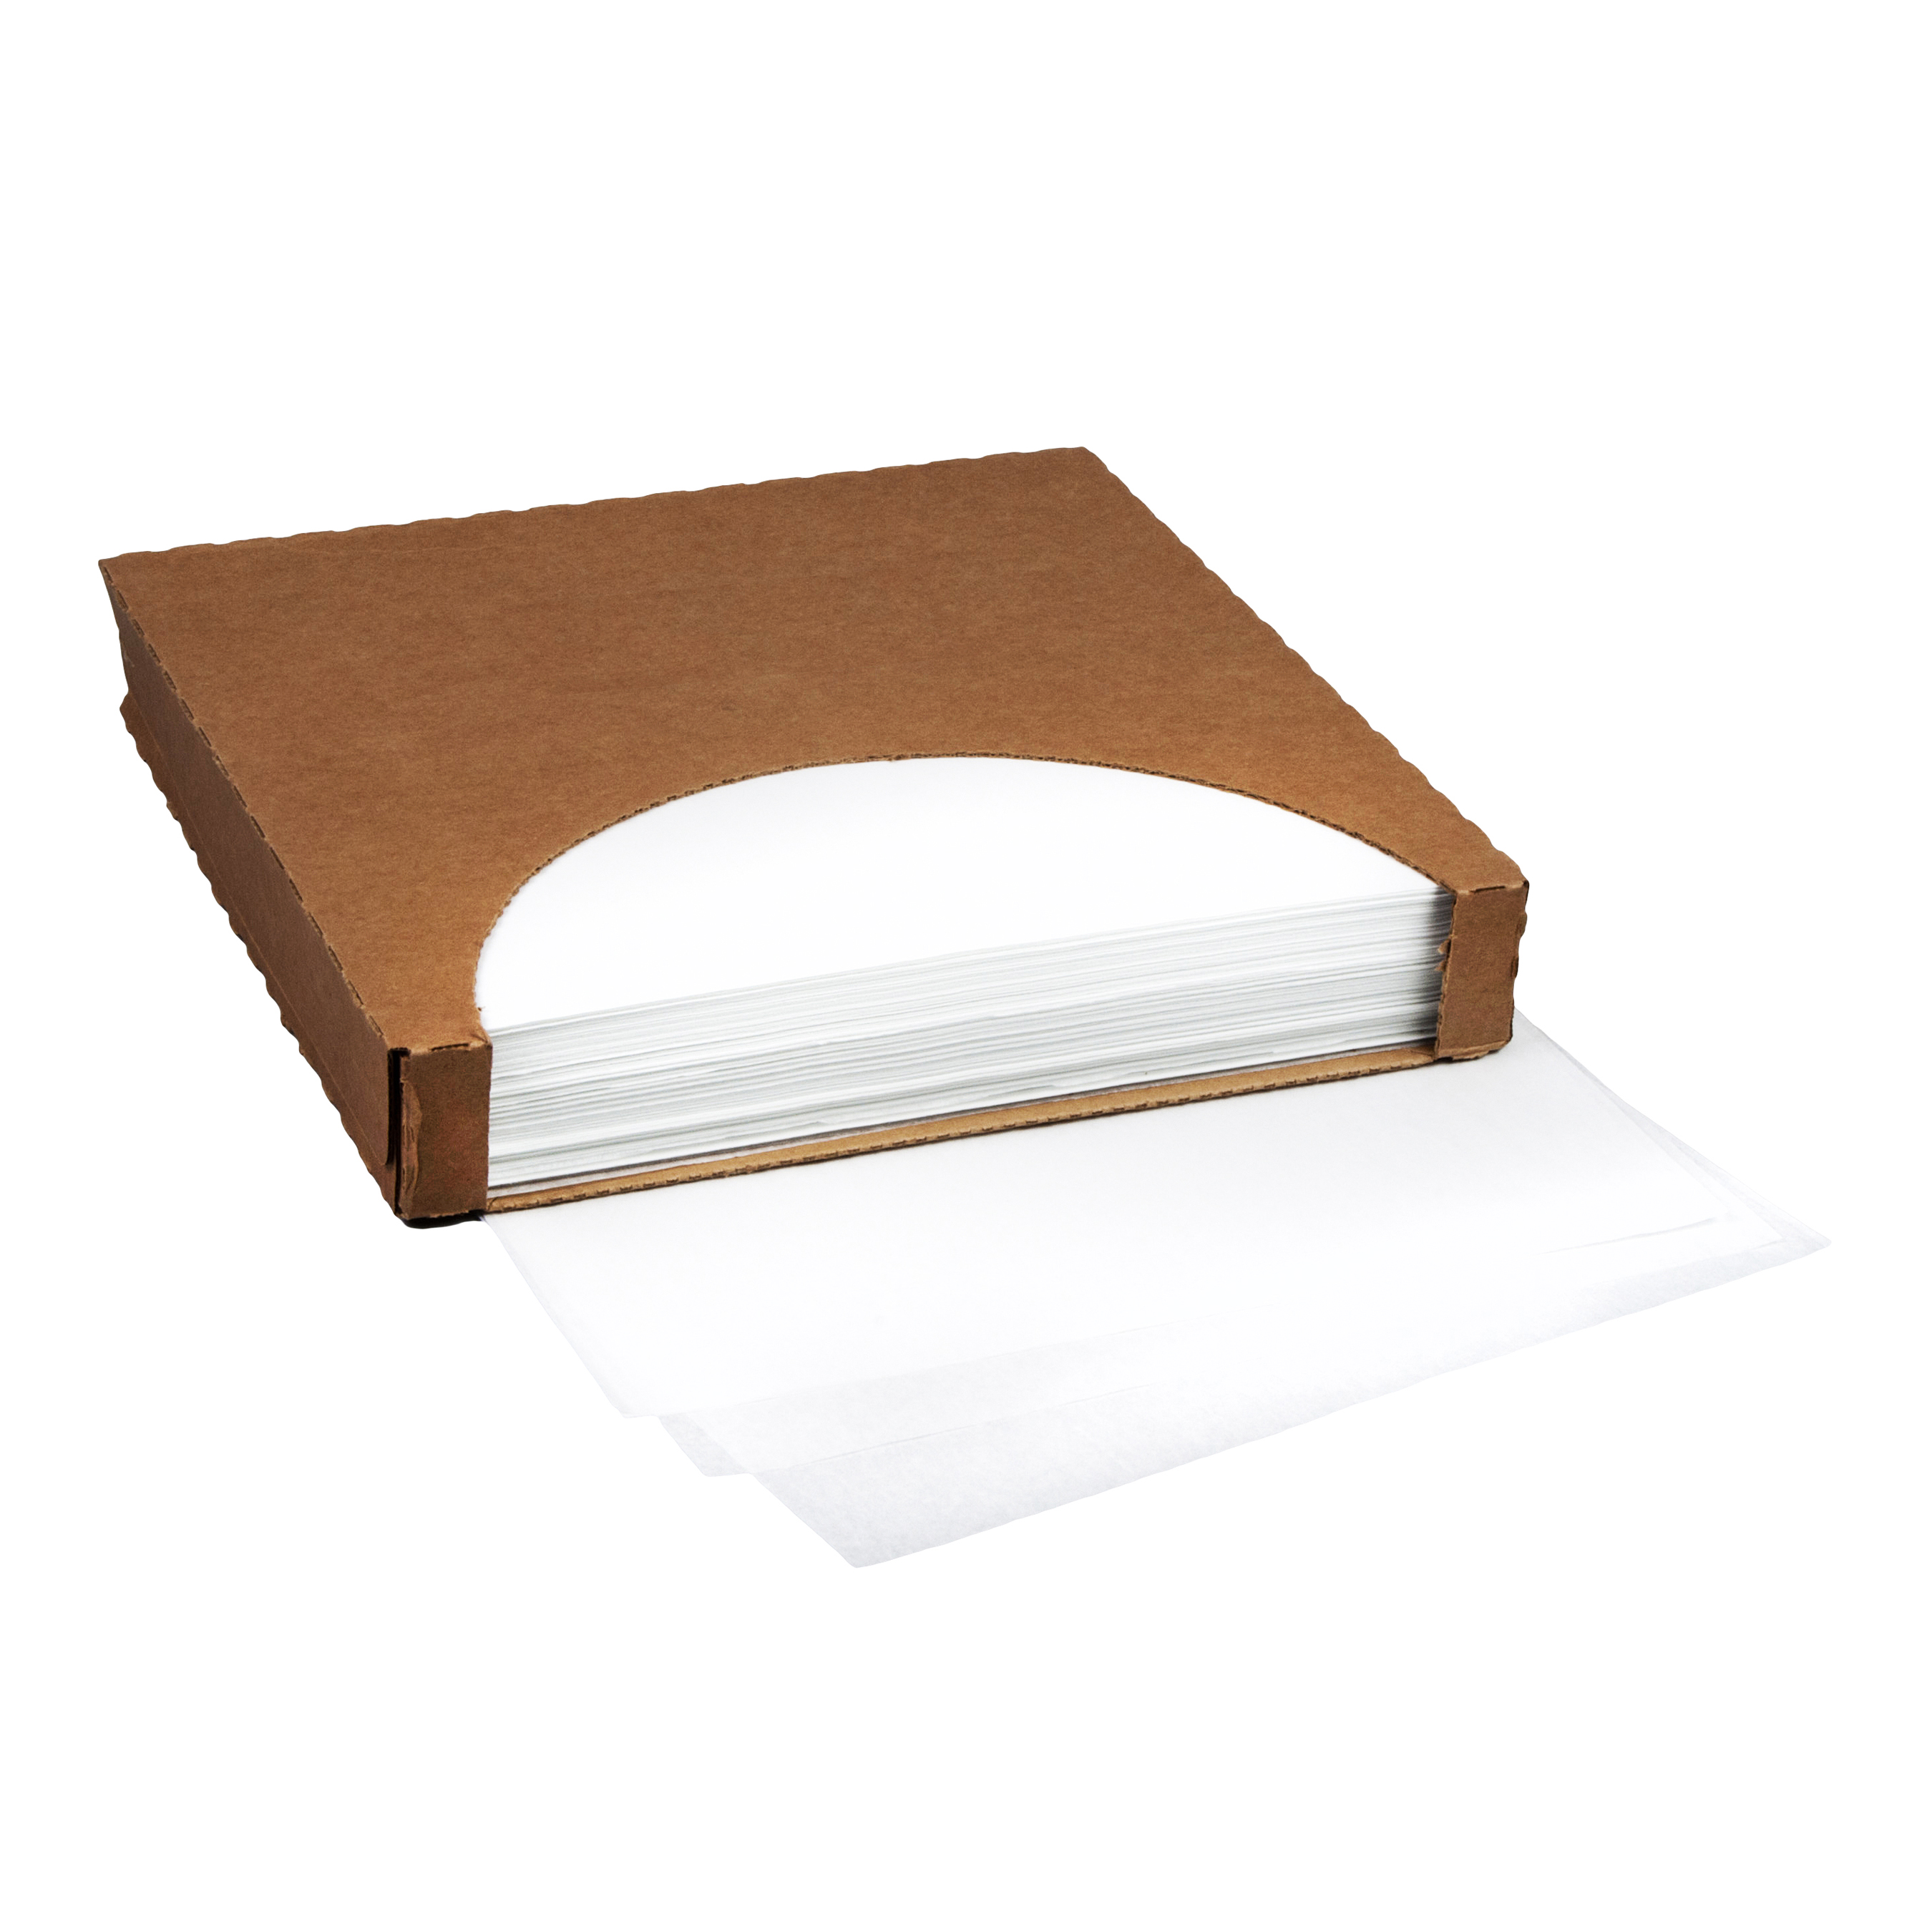 WAX SHEETS PLAIN 12X12  7B4